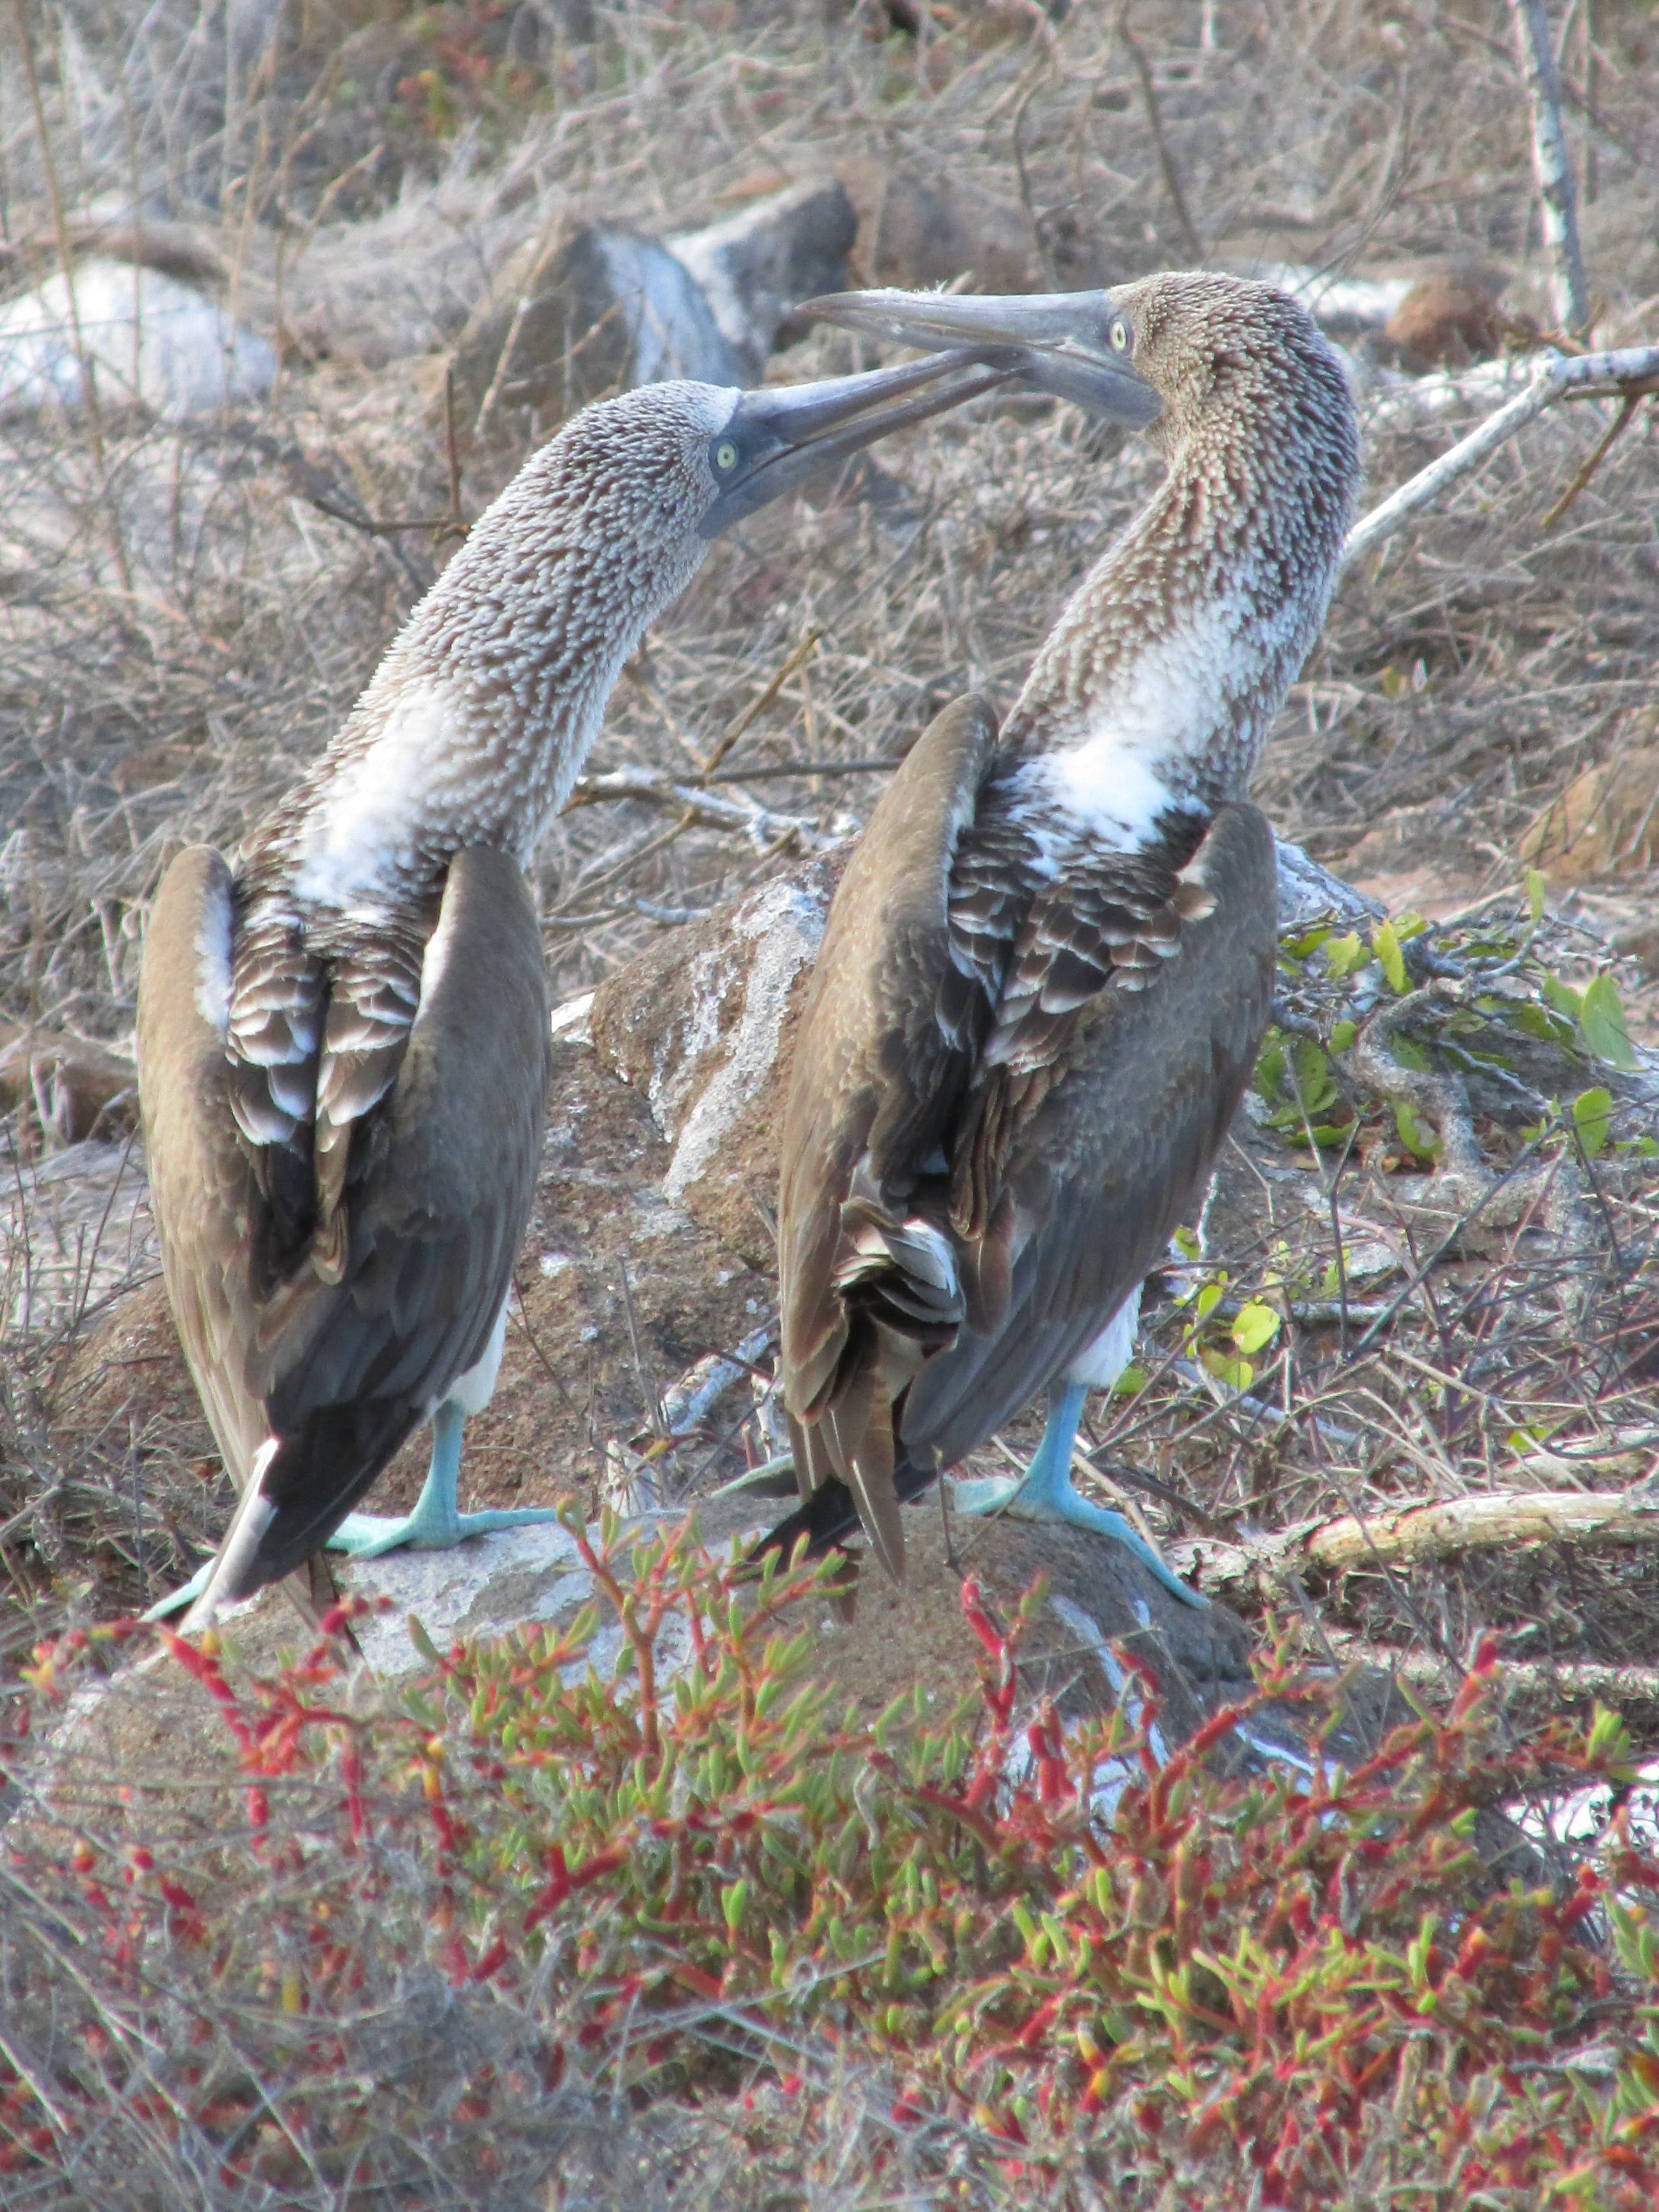 The courtship dance involves lots of head bobbing and foot lifting.